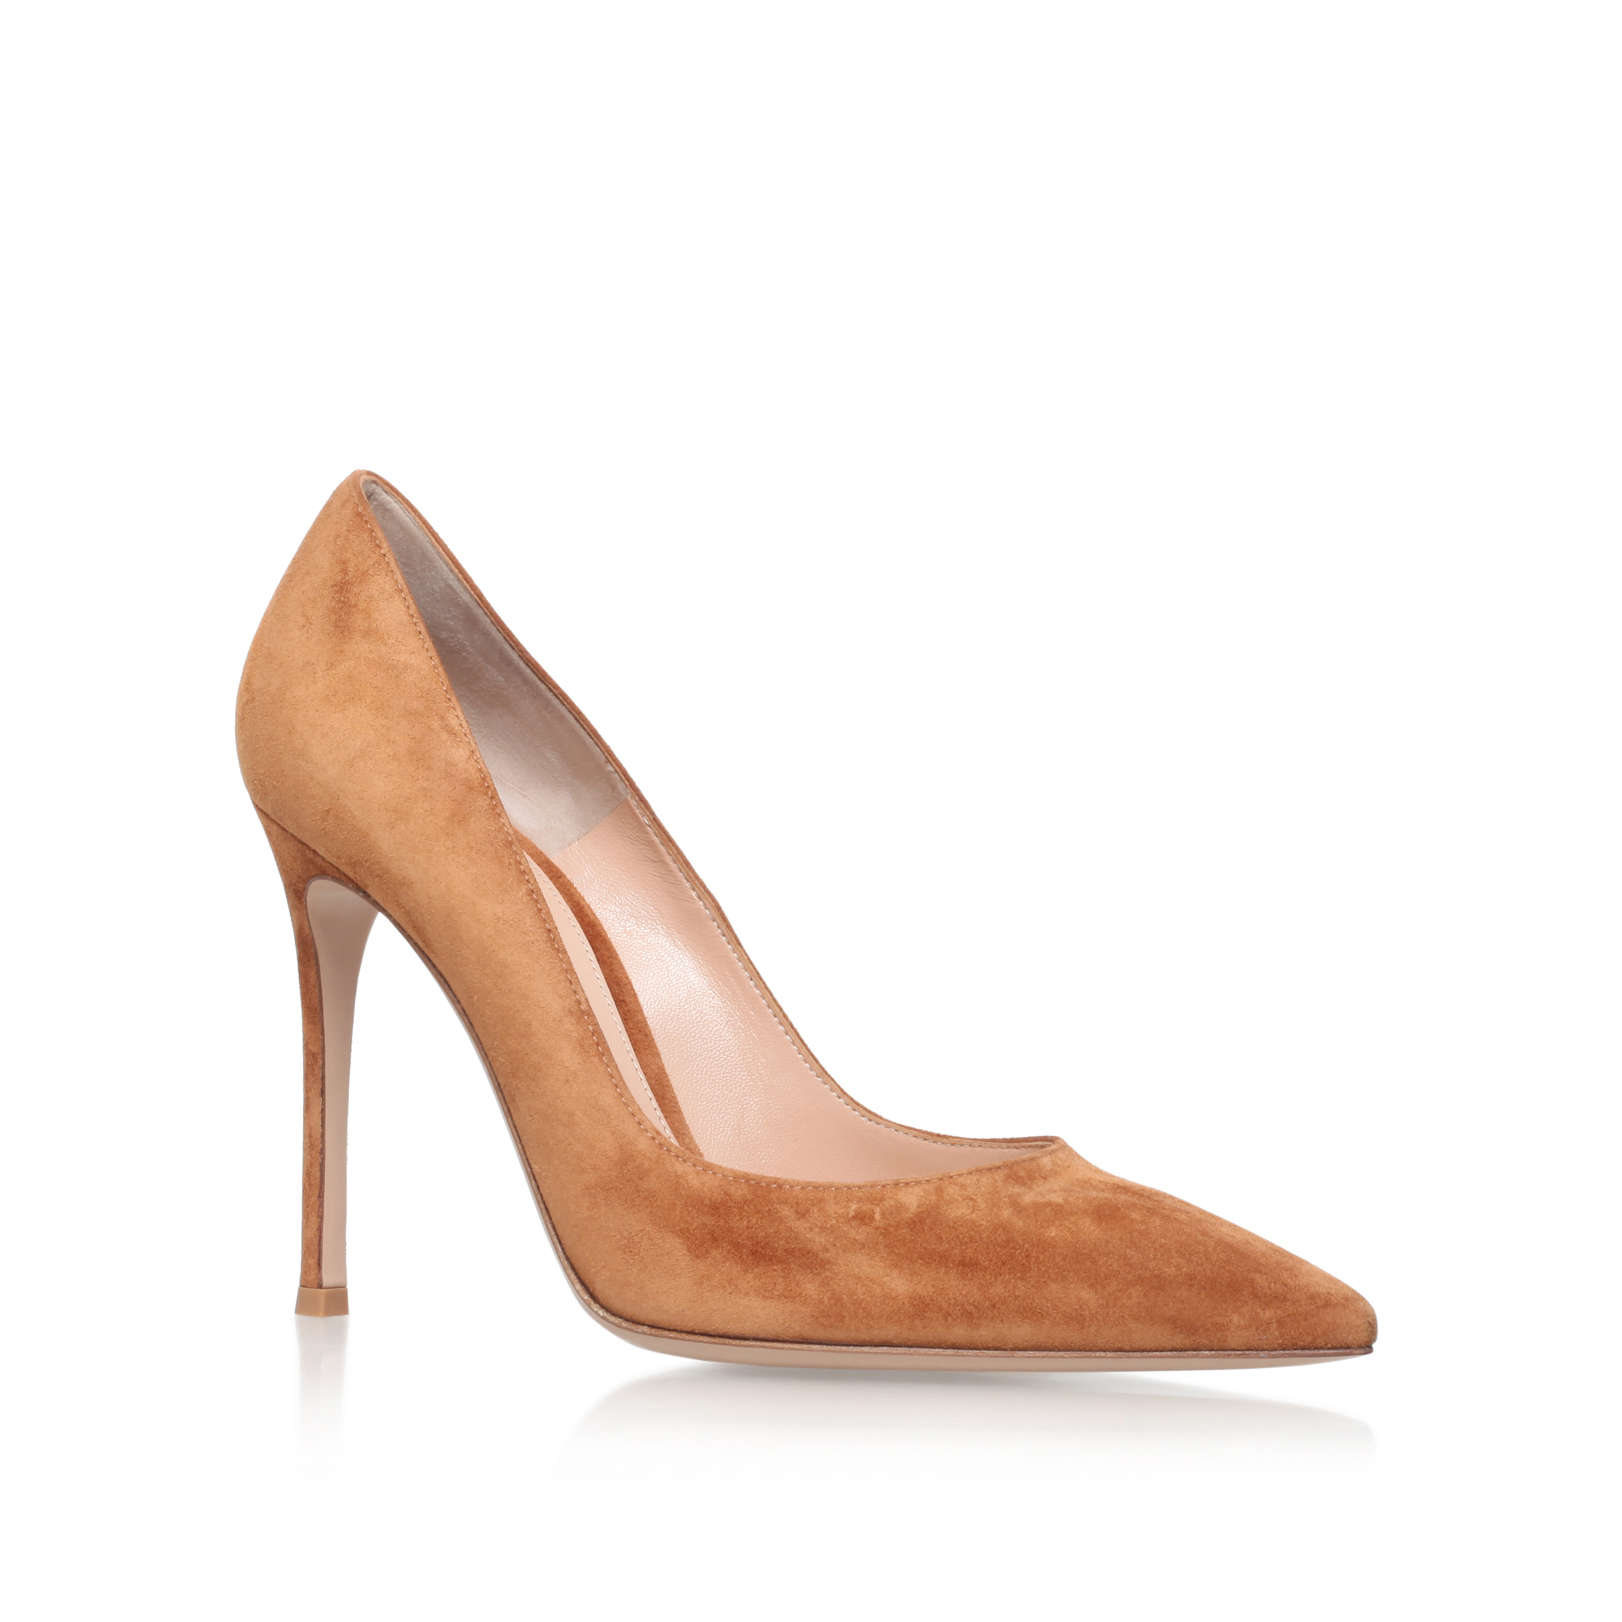 GIANVITO PUMP 105